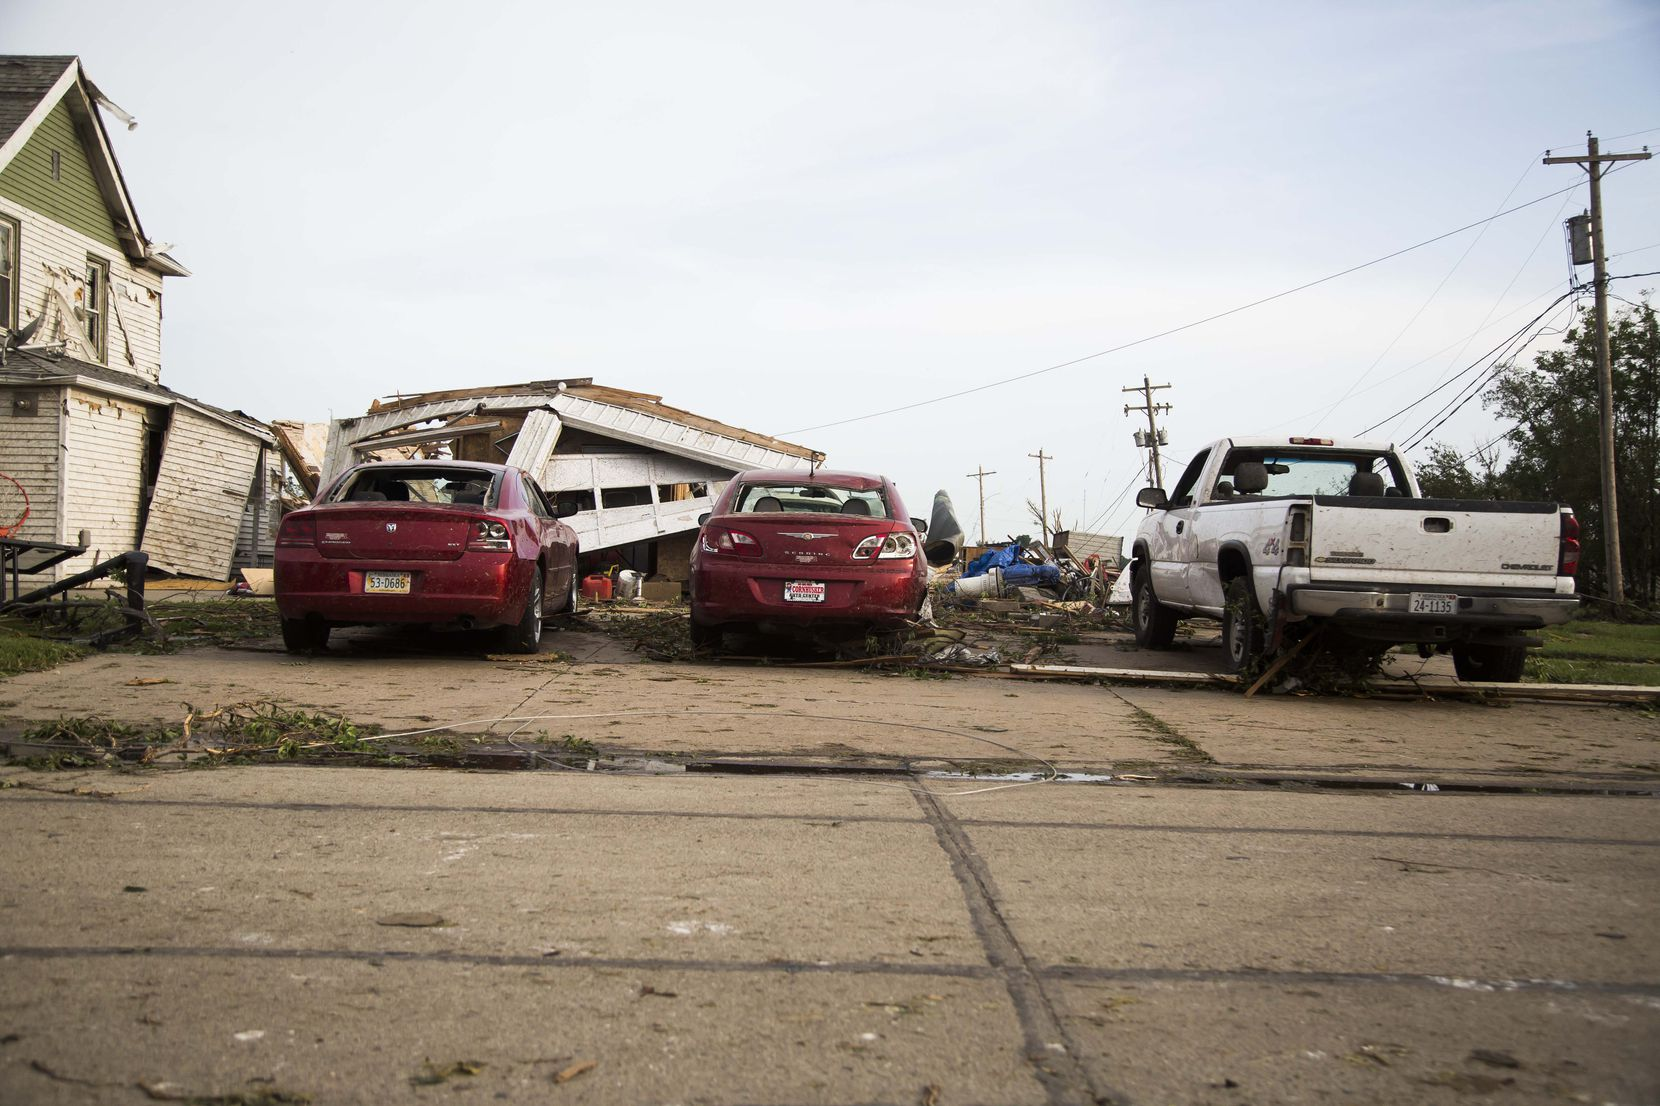 Damaged cars are parked in front of a garage that was torn down by a tornado on Monday, June 16, 2014, in Pilger, Neb. The National Weather Service said at least two twisters touched down within roughly a mile of each other. (AP Photo/The Journal-Star, Stacie Scott)